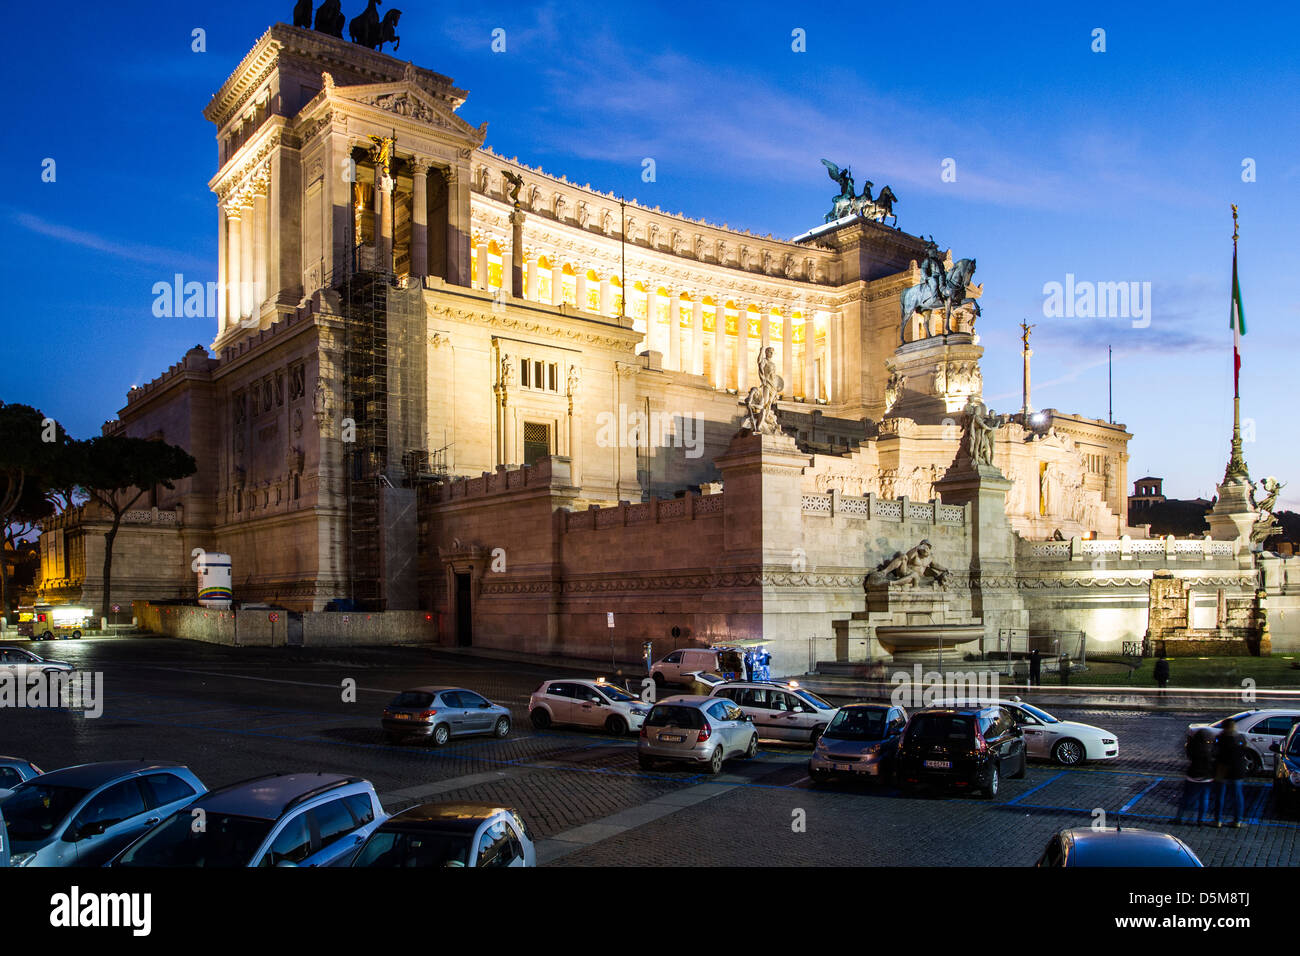 Monumento Nazionale a Vittorio Emanuele II (National Monument to Victor Emmanuel II) at evening. - Stock Image